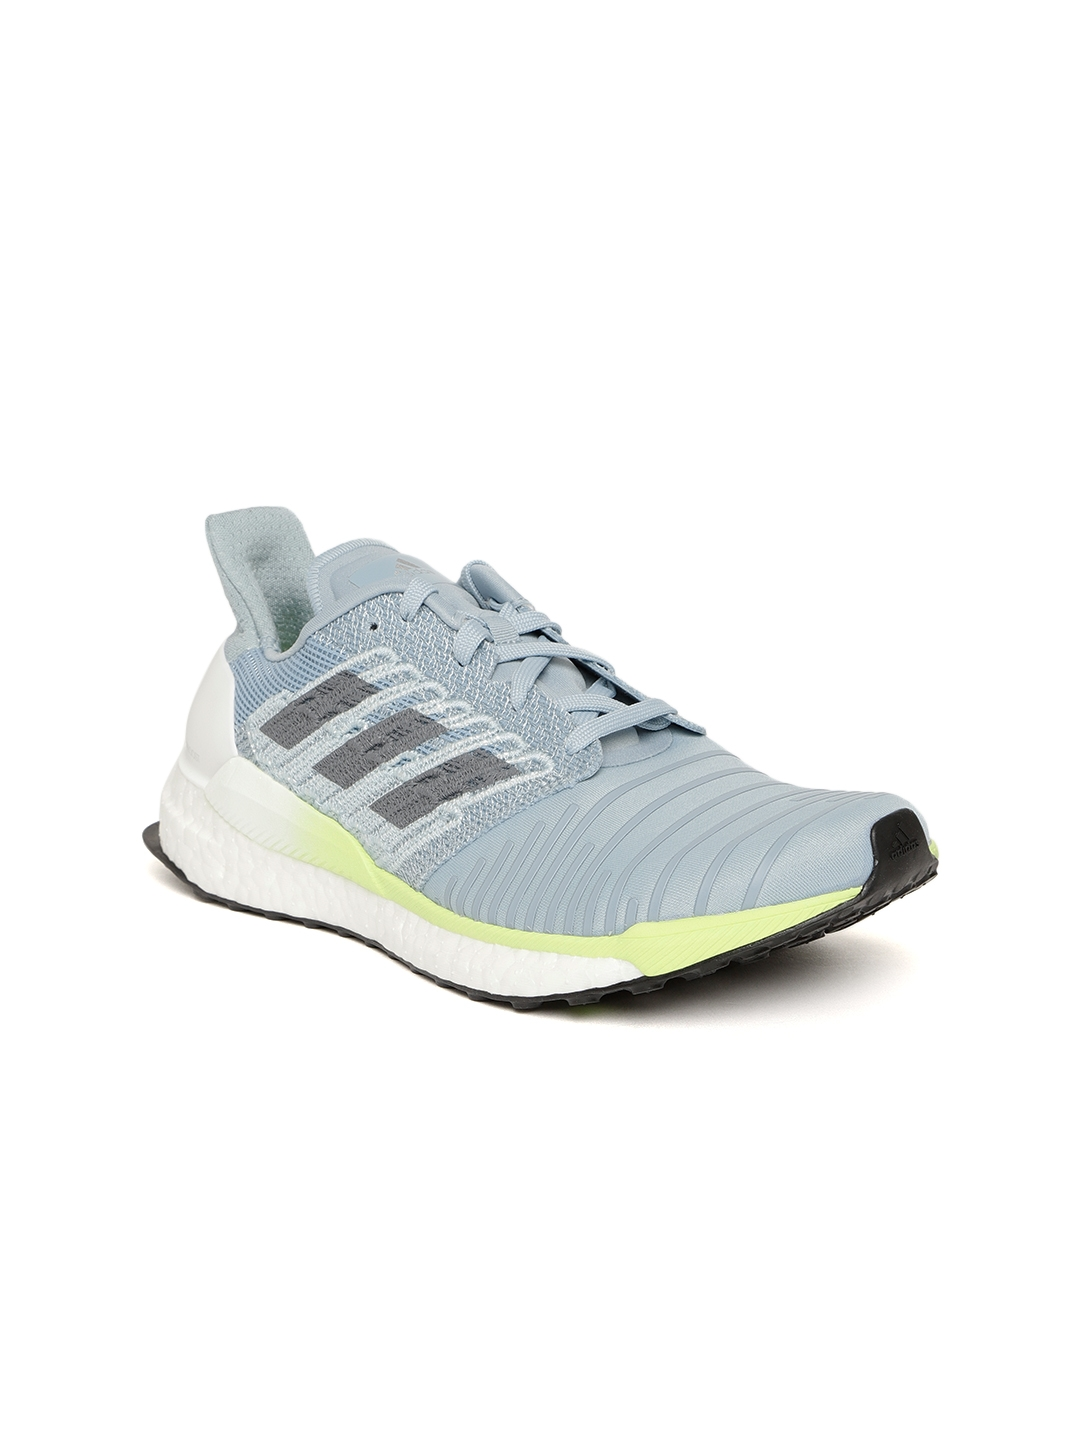 a441e68a67616 Buy ADIDAS Women Grey Solar Boost Running Shoes - Sports Shoes for ...